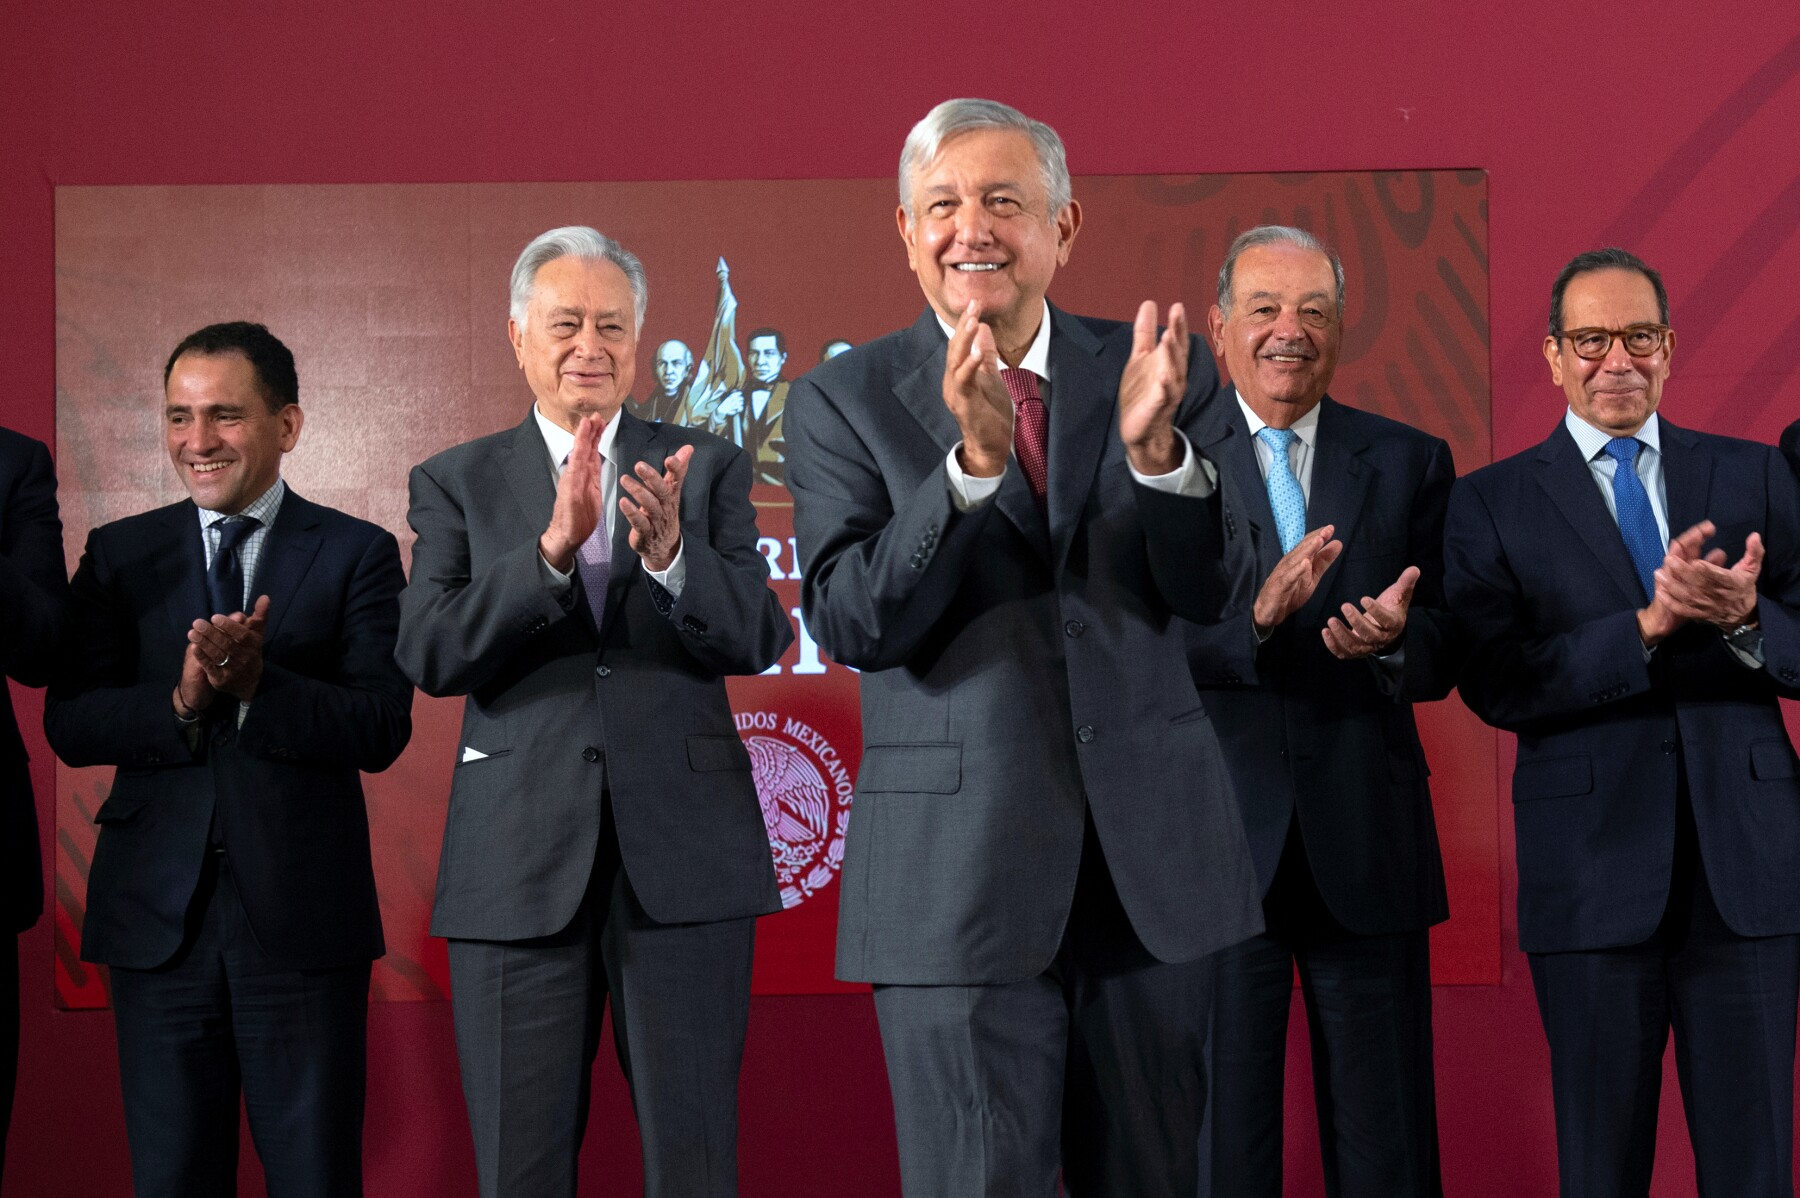 Mexico's President Andres Manuel Lopez Obrador attends an event where the government reached a deal with companies to renegotiate the terms of natural gas pipeline contracts signed under the previous administration, in Mexico City